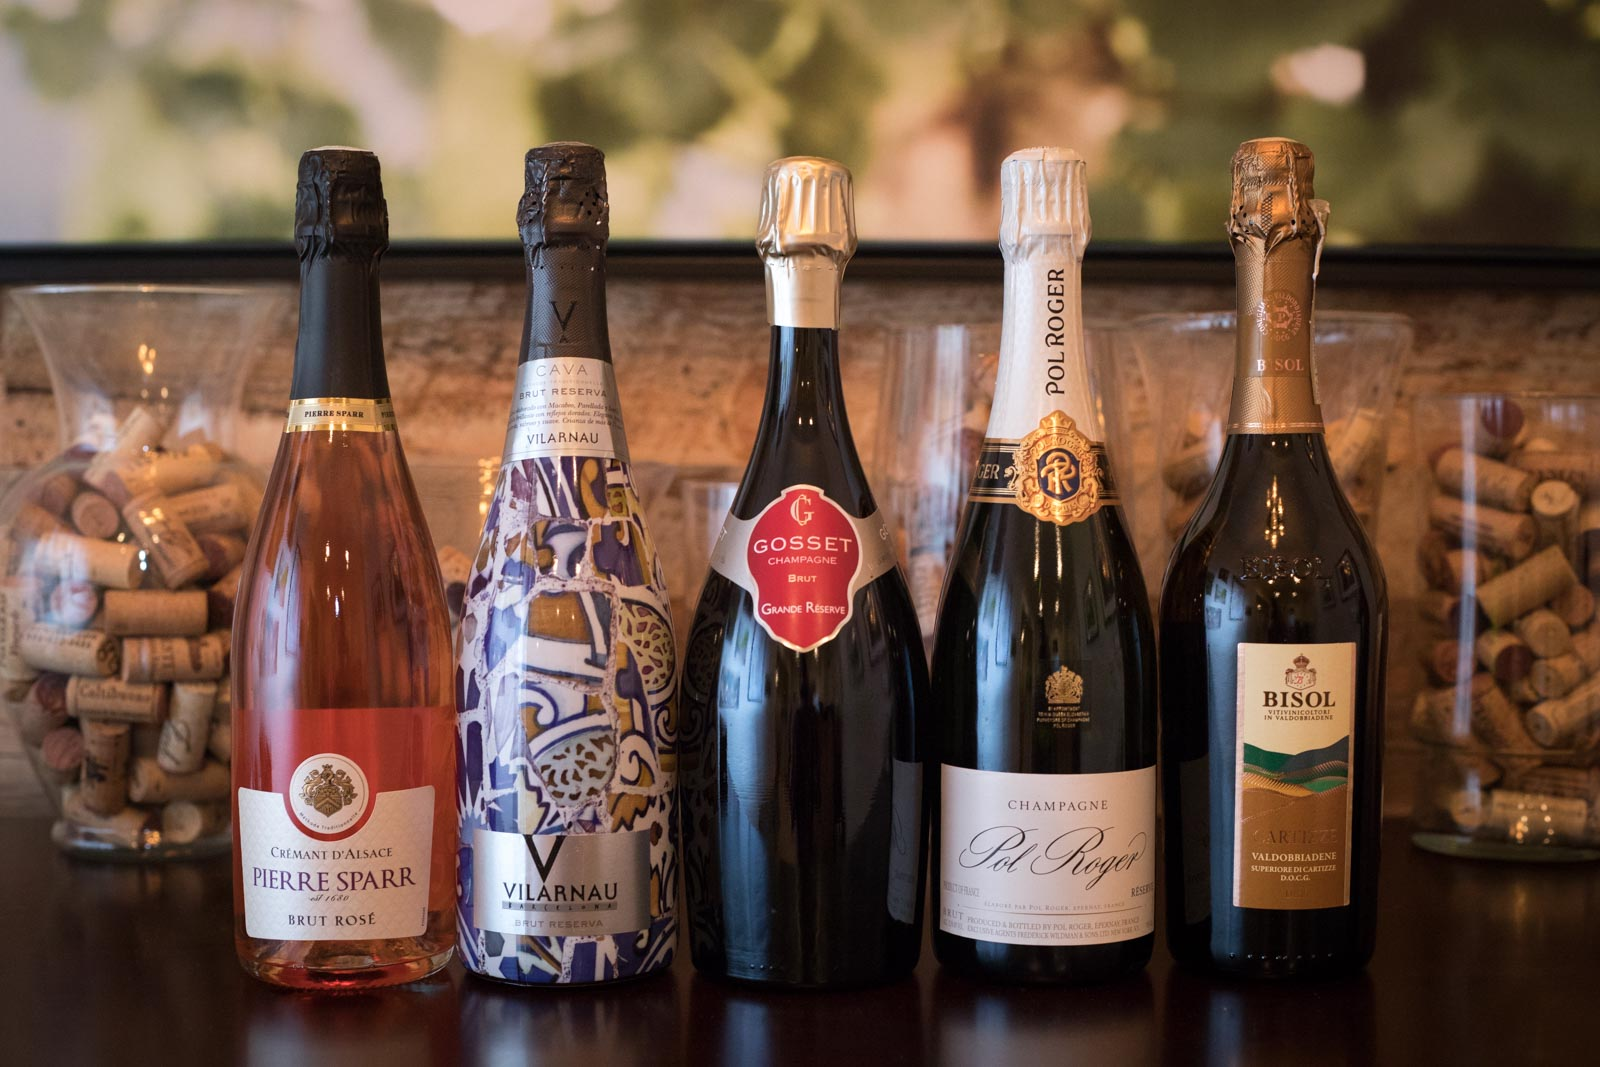 Prosecco, Cava or Champagne for New Years Eve?